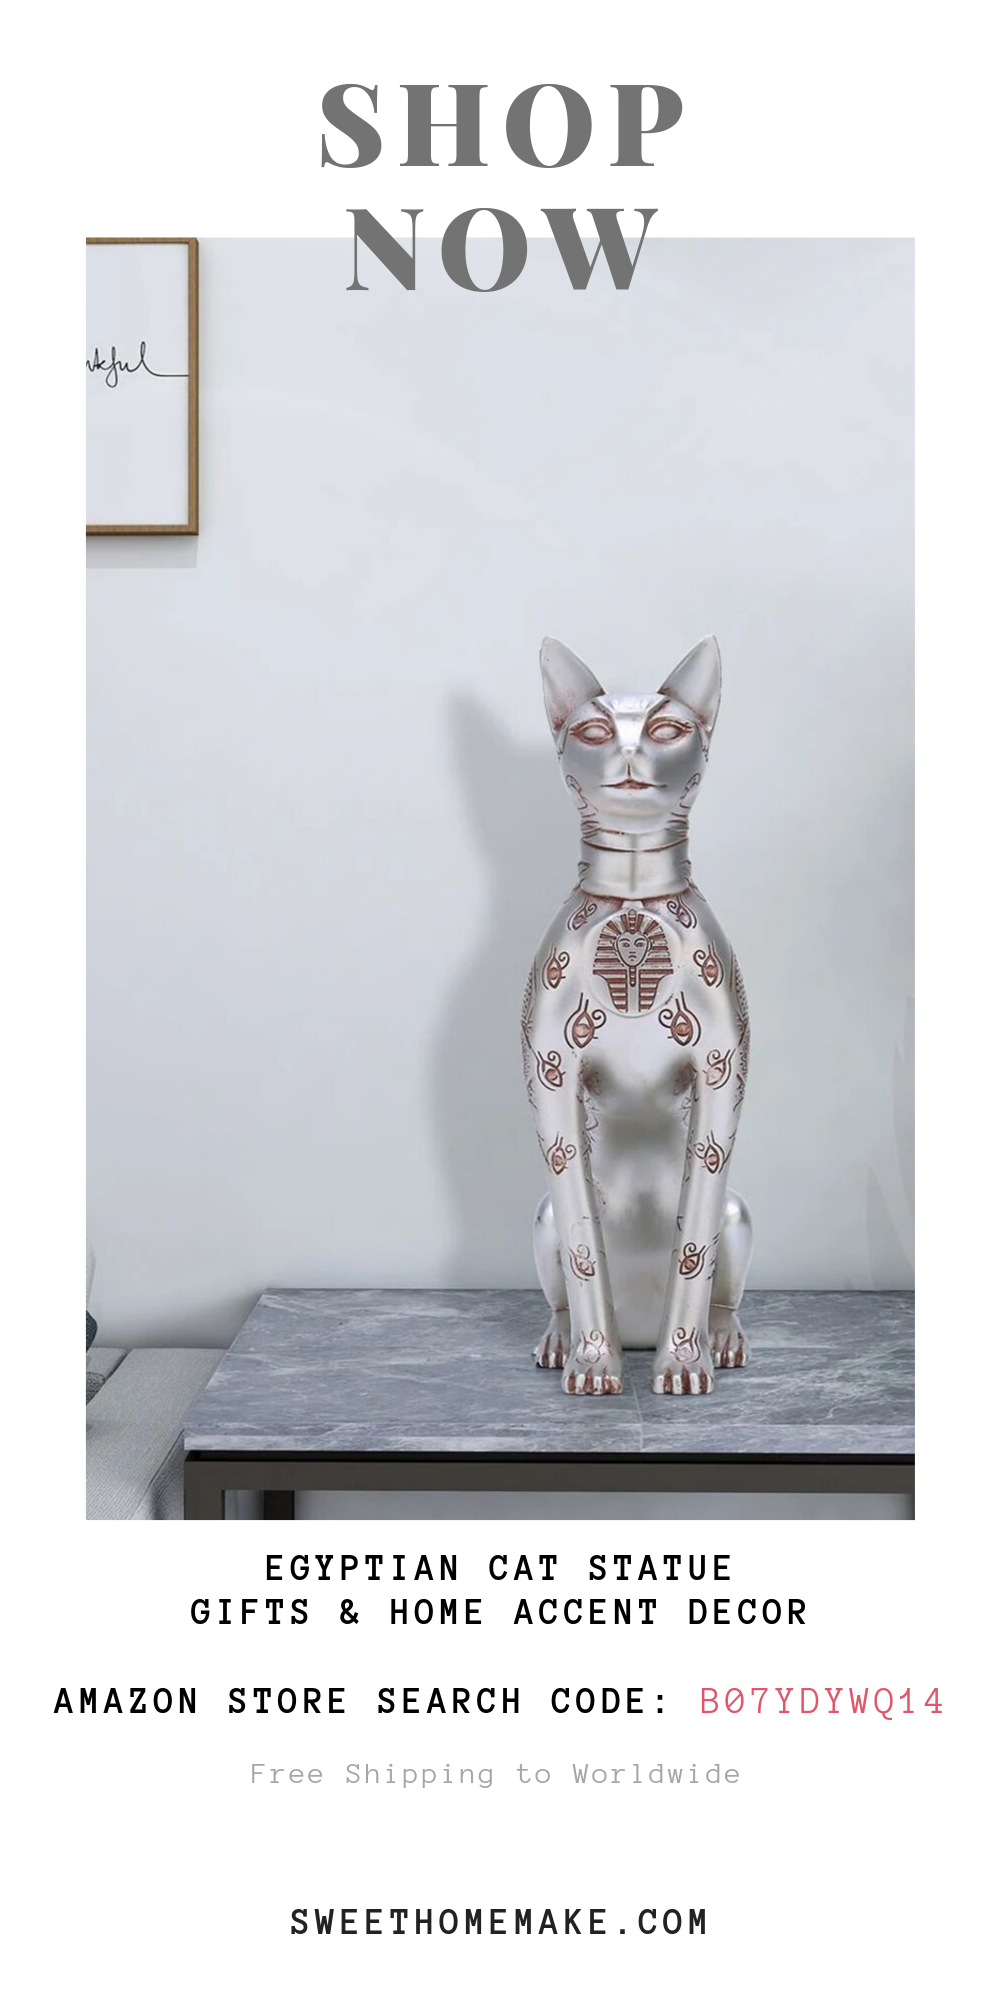 Egyptian Cat Statue For Cat Ornament and Gifts For Cat Lovers